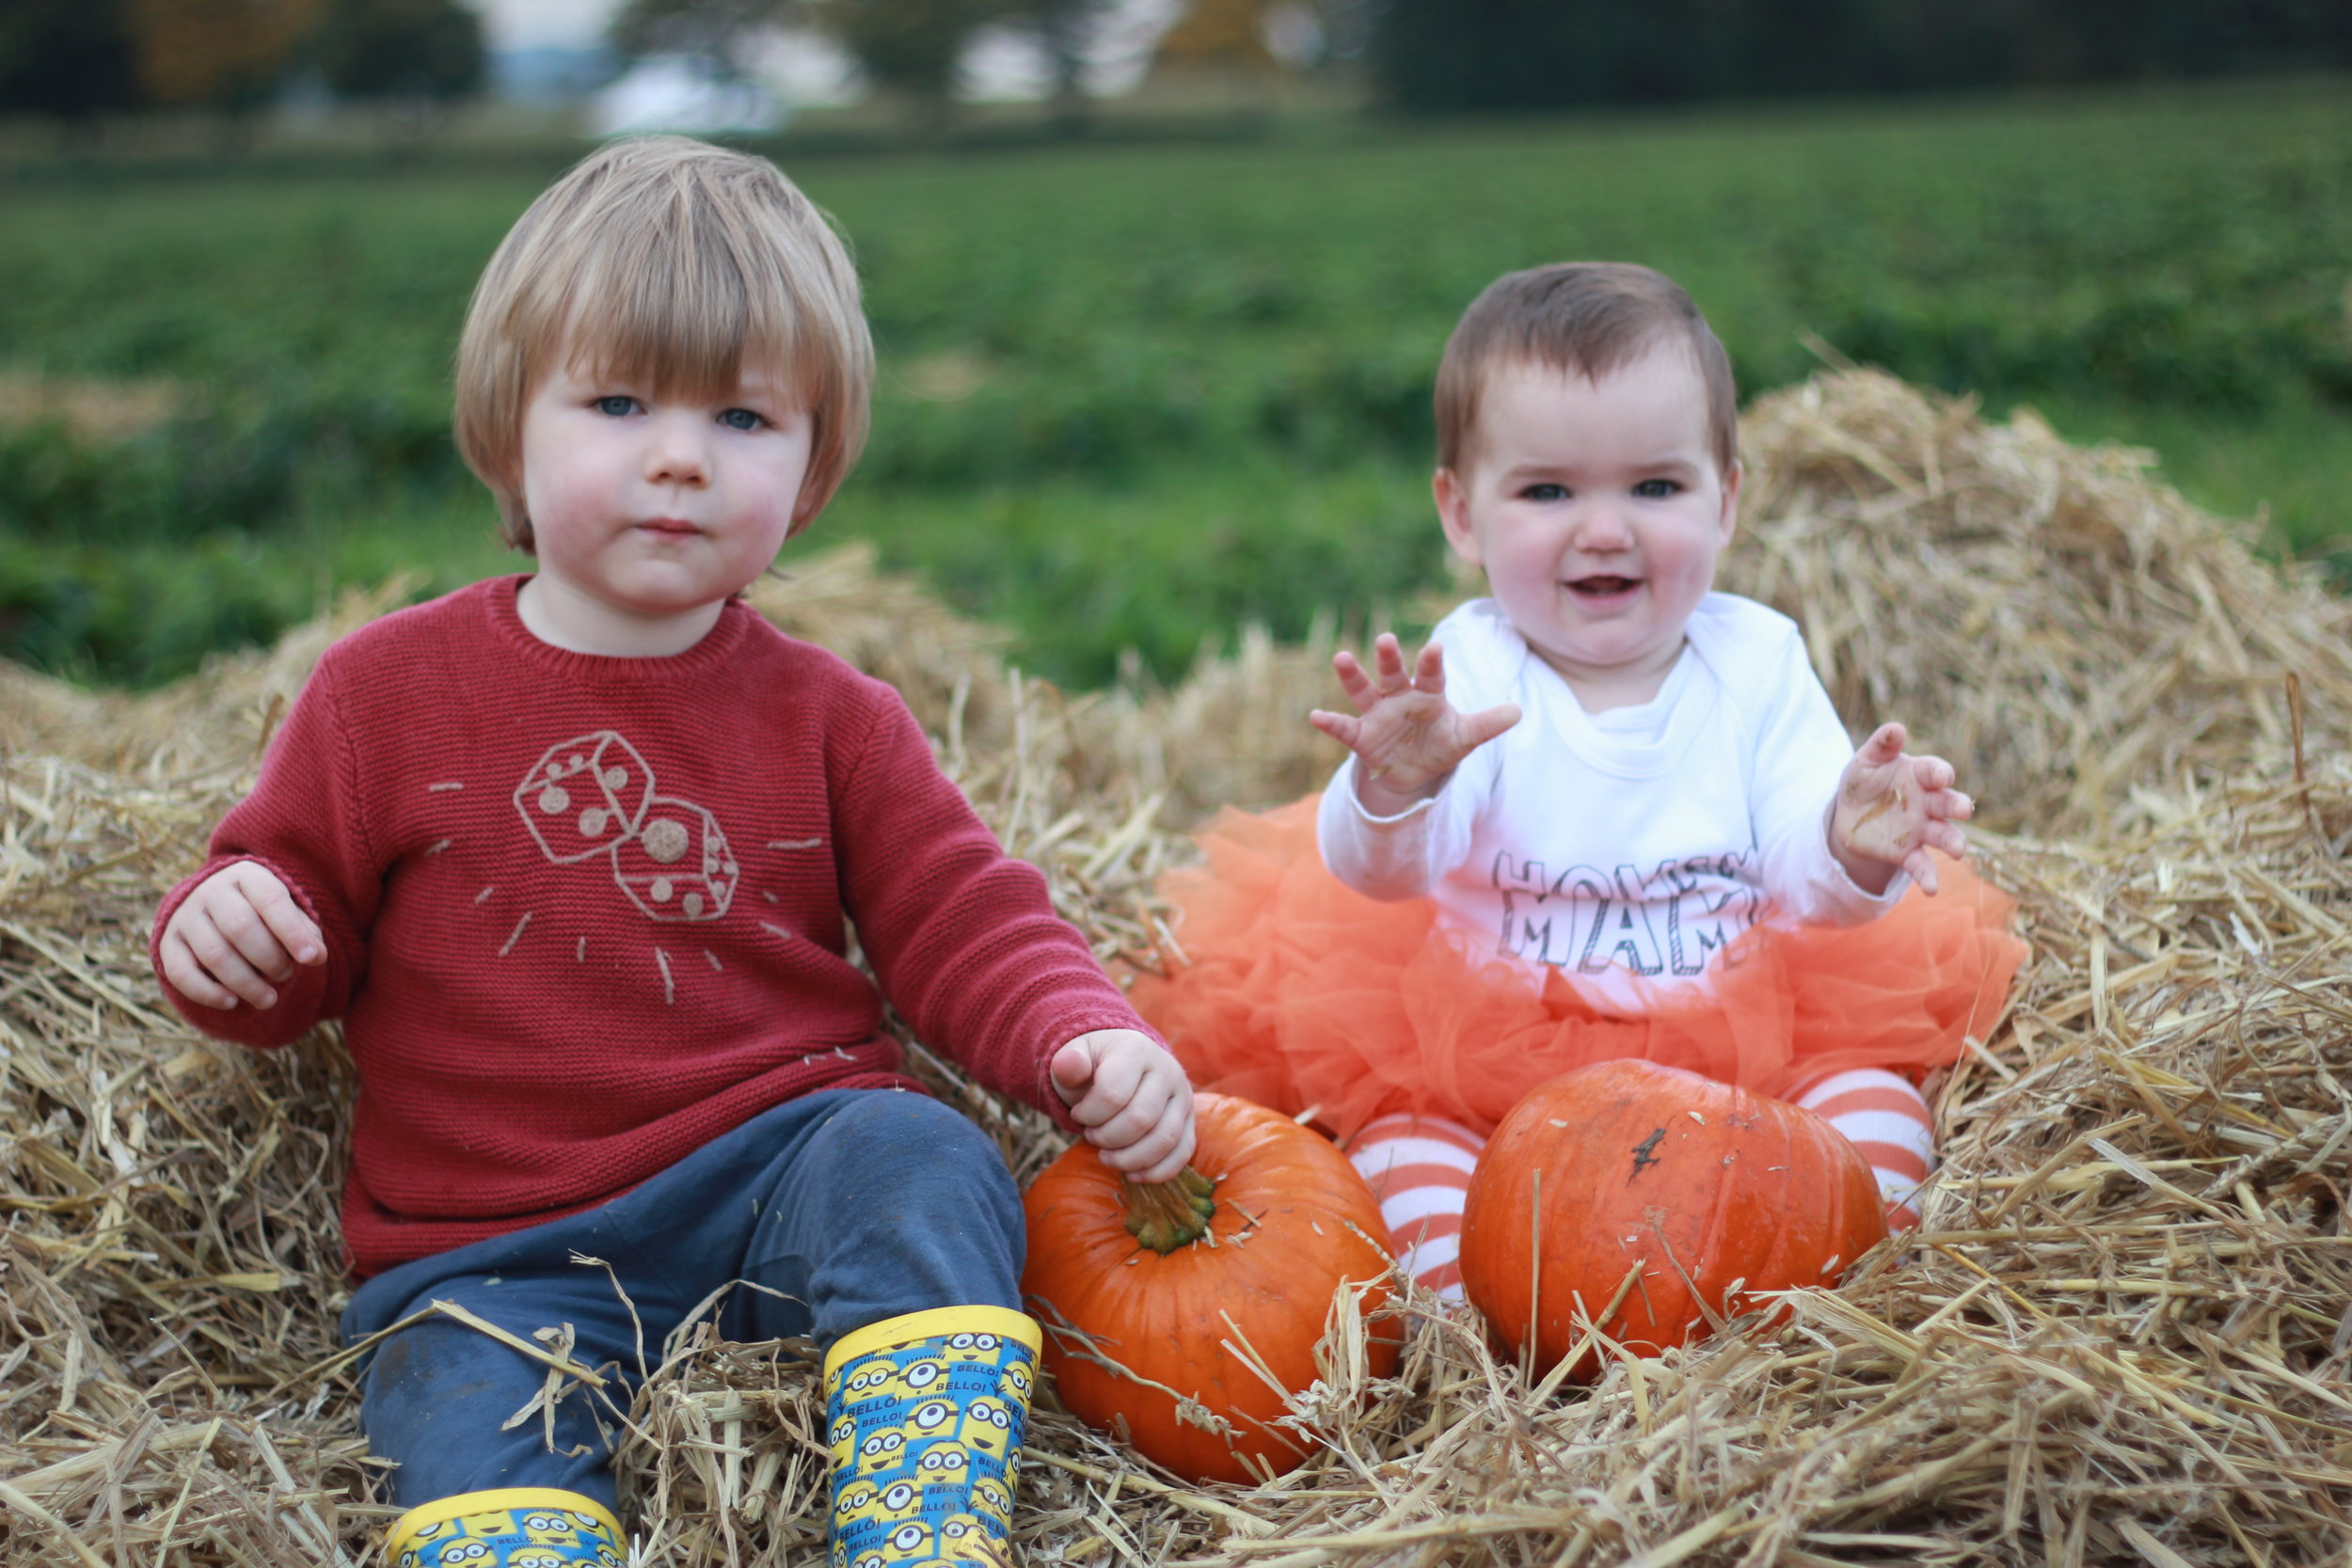 Brocksbushes farm shop and tea room Halloween 2016 Northumberland pumpkin patch kids events baby toddler. Eileen and Joe children's entertainer dressed as a witch, with a toddler. Siblings play in a pumpkin patch